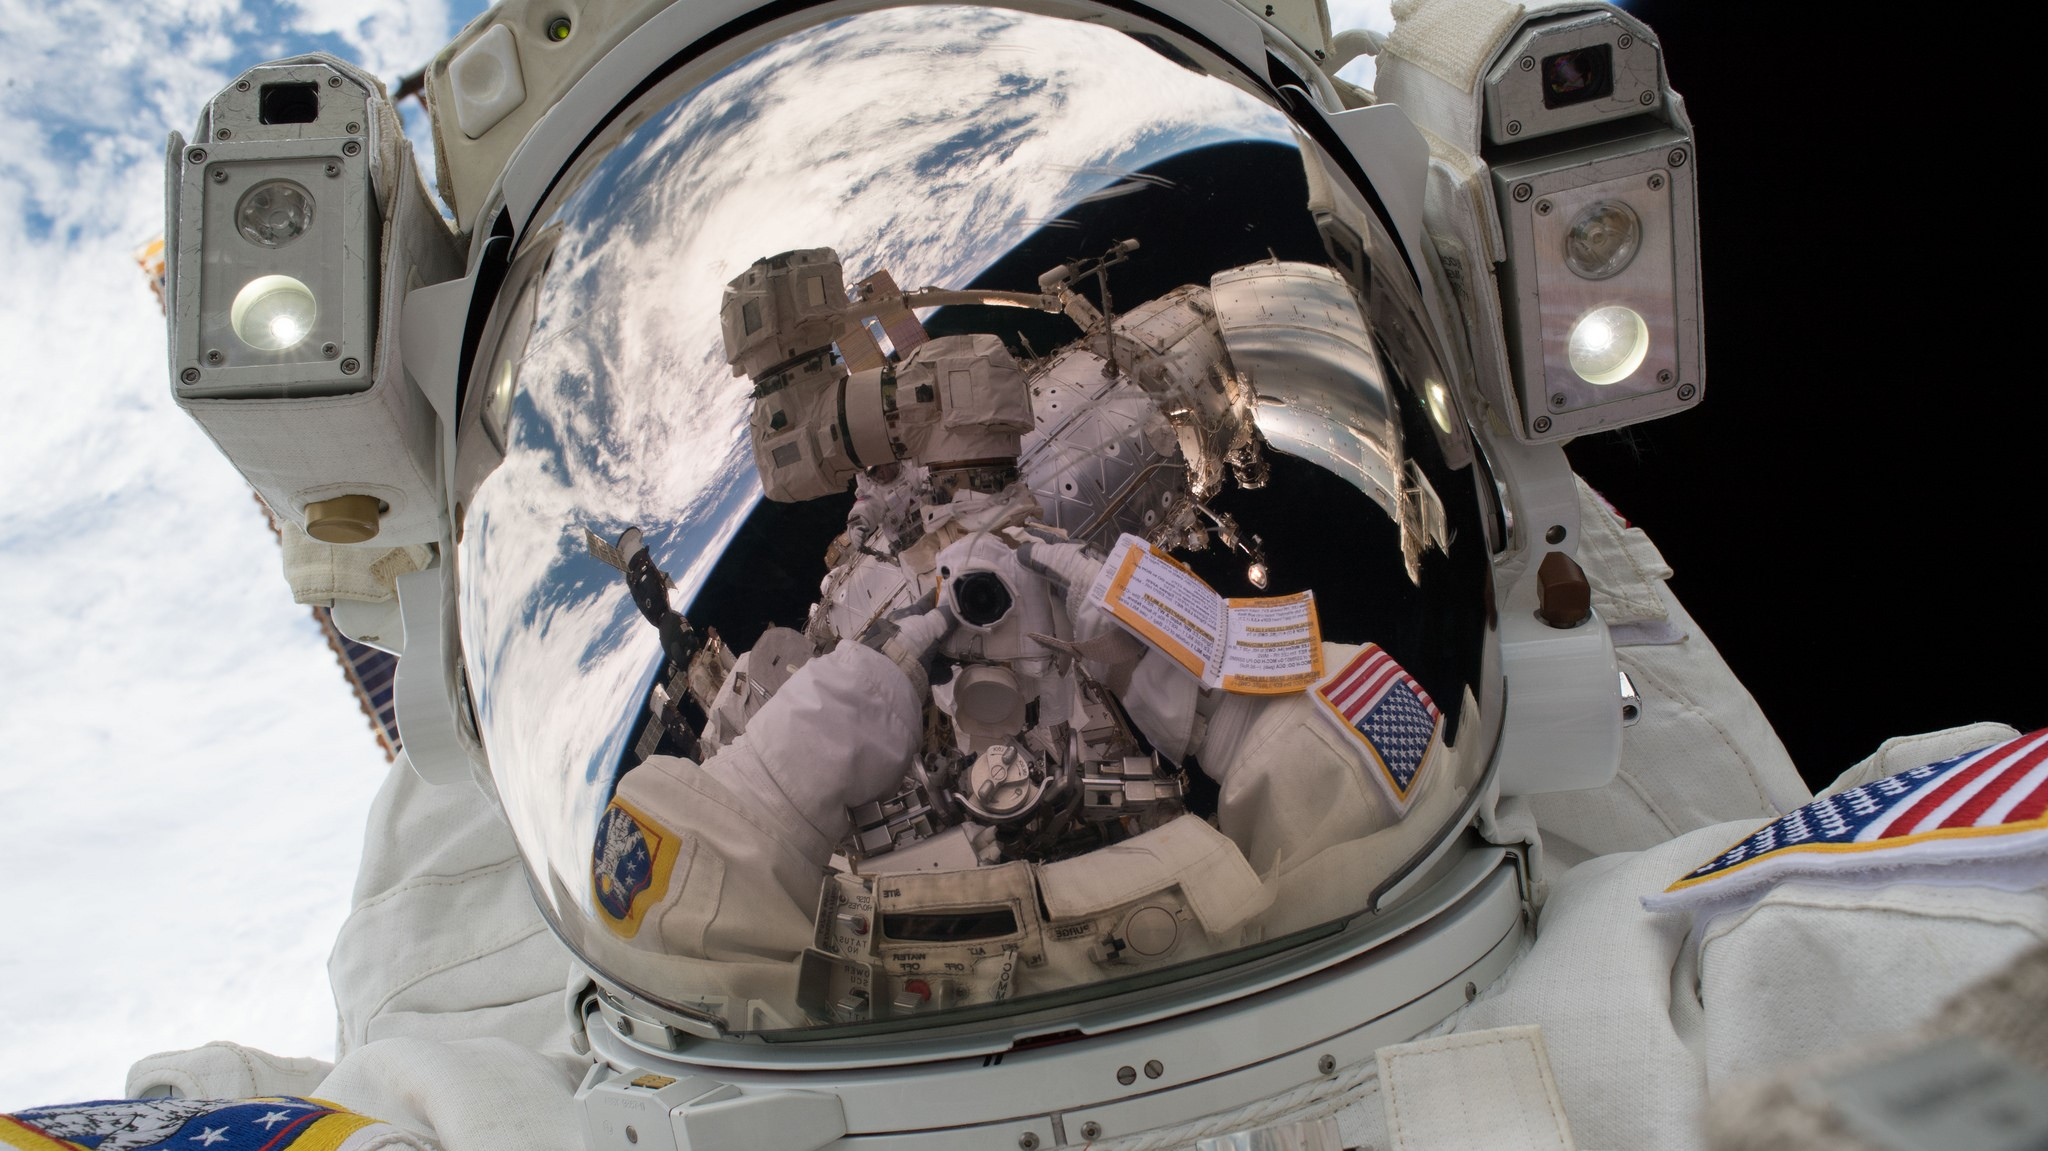 """NASA astronaut Mark Vande Hei takes a """"space-selfie"""" during U.S. EVA-47, the first spacewalk of 2018. He once again ventured outside, this time with Japanese astronaut Norishige Kanai, for U.S. EVA-48, which completed work upgrading the robotic Canadarm2. Credit: Mark Vande Hei / NASA"""